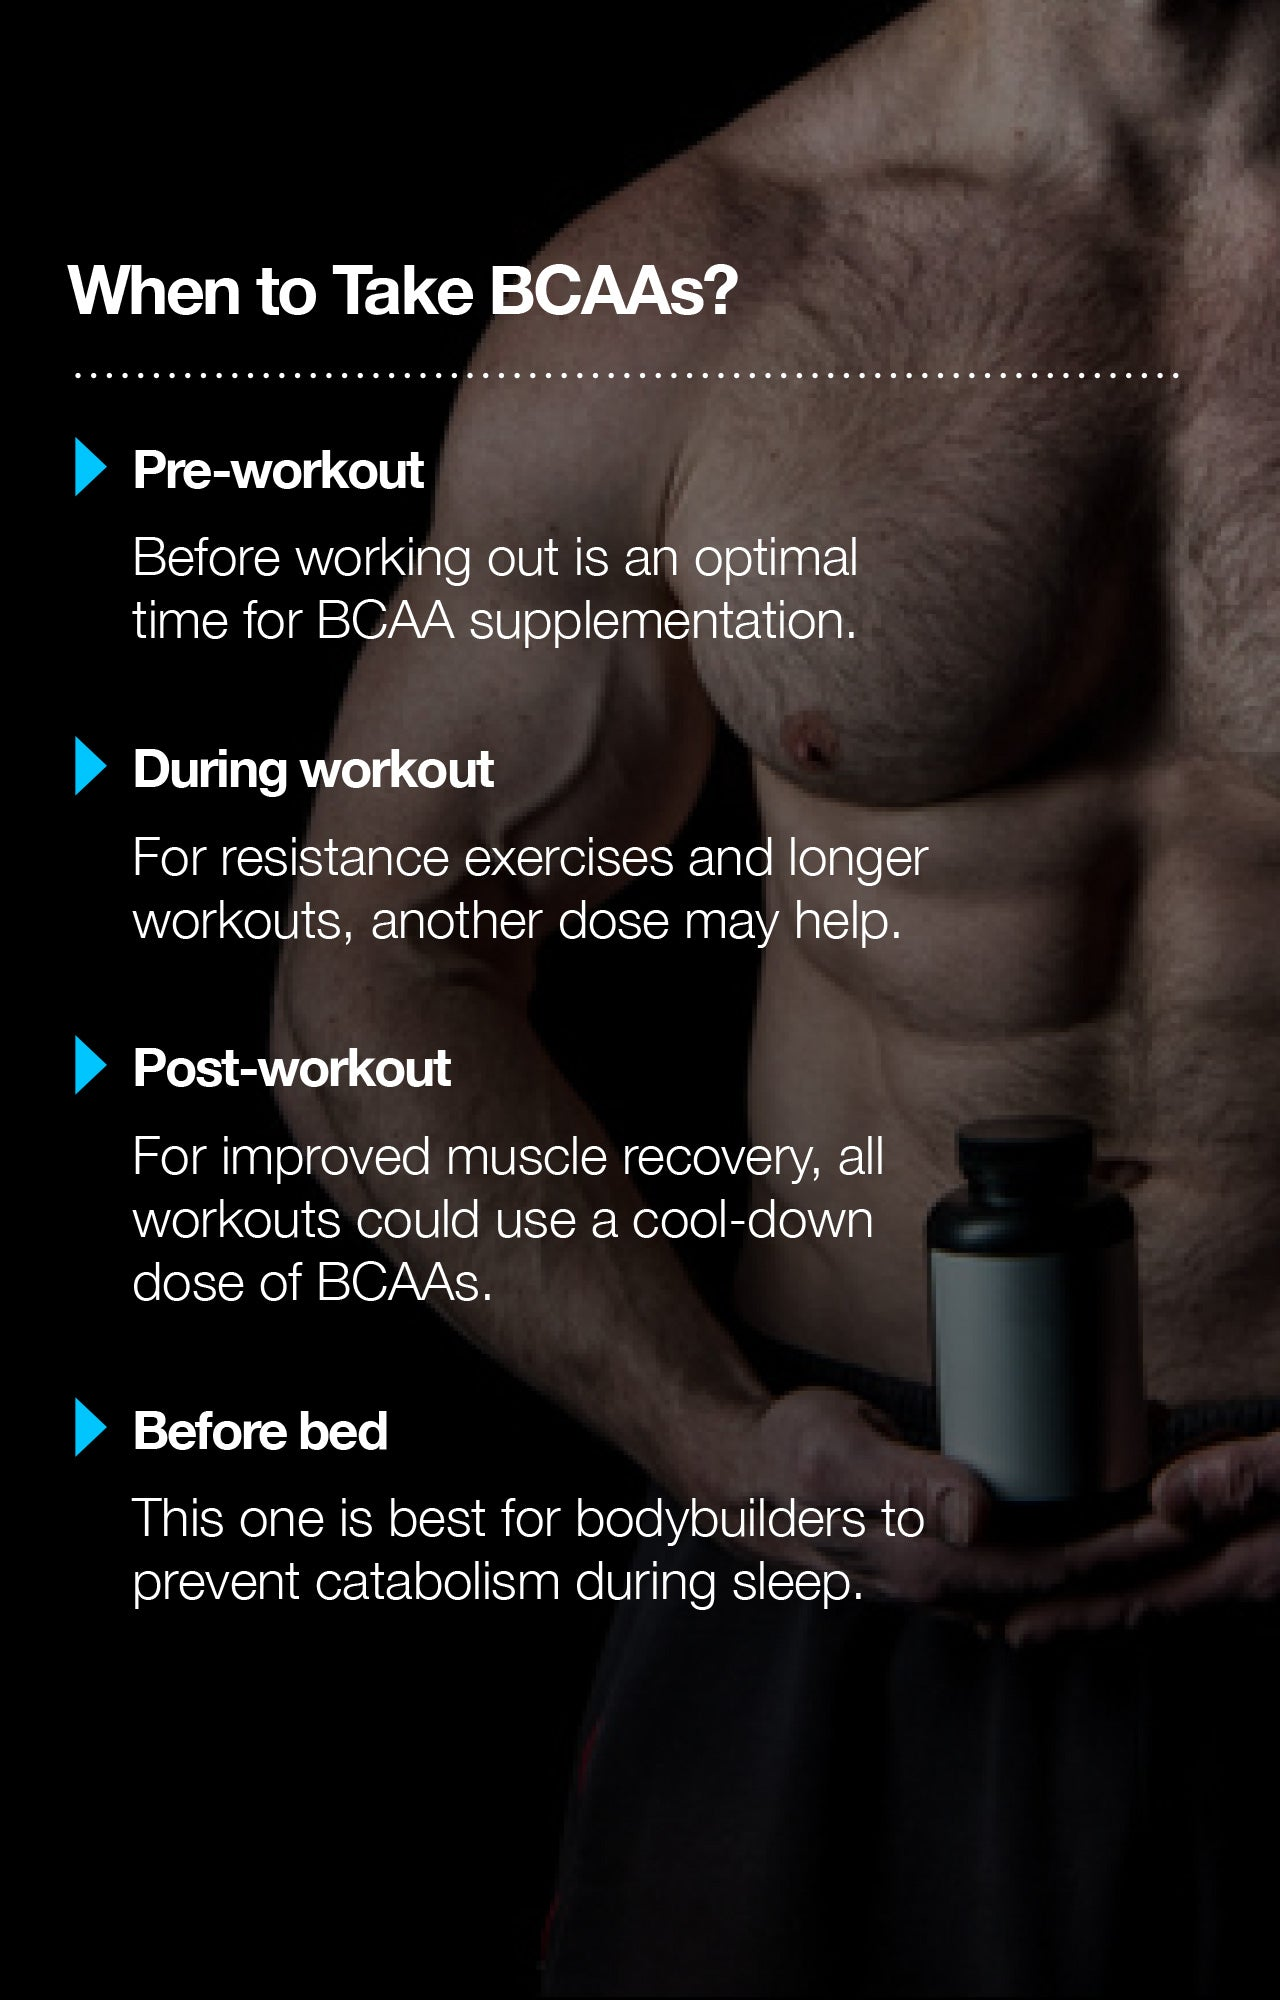 When to take BCAAs for muscle building?